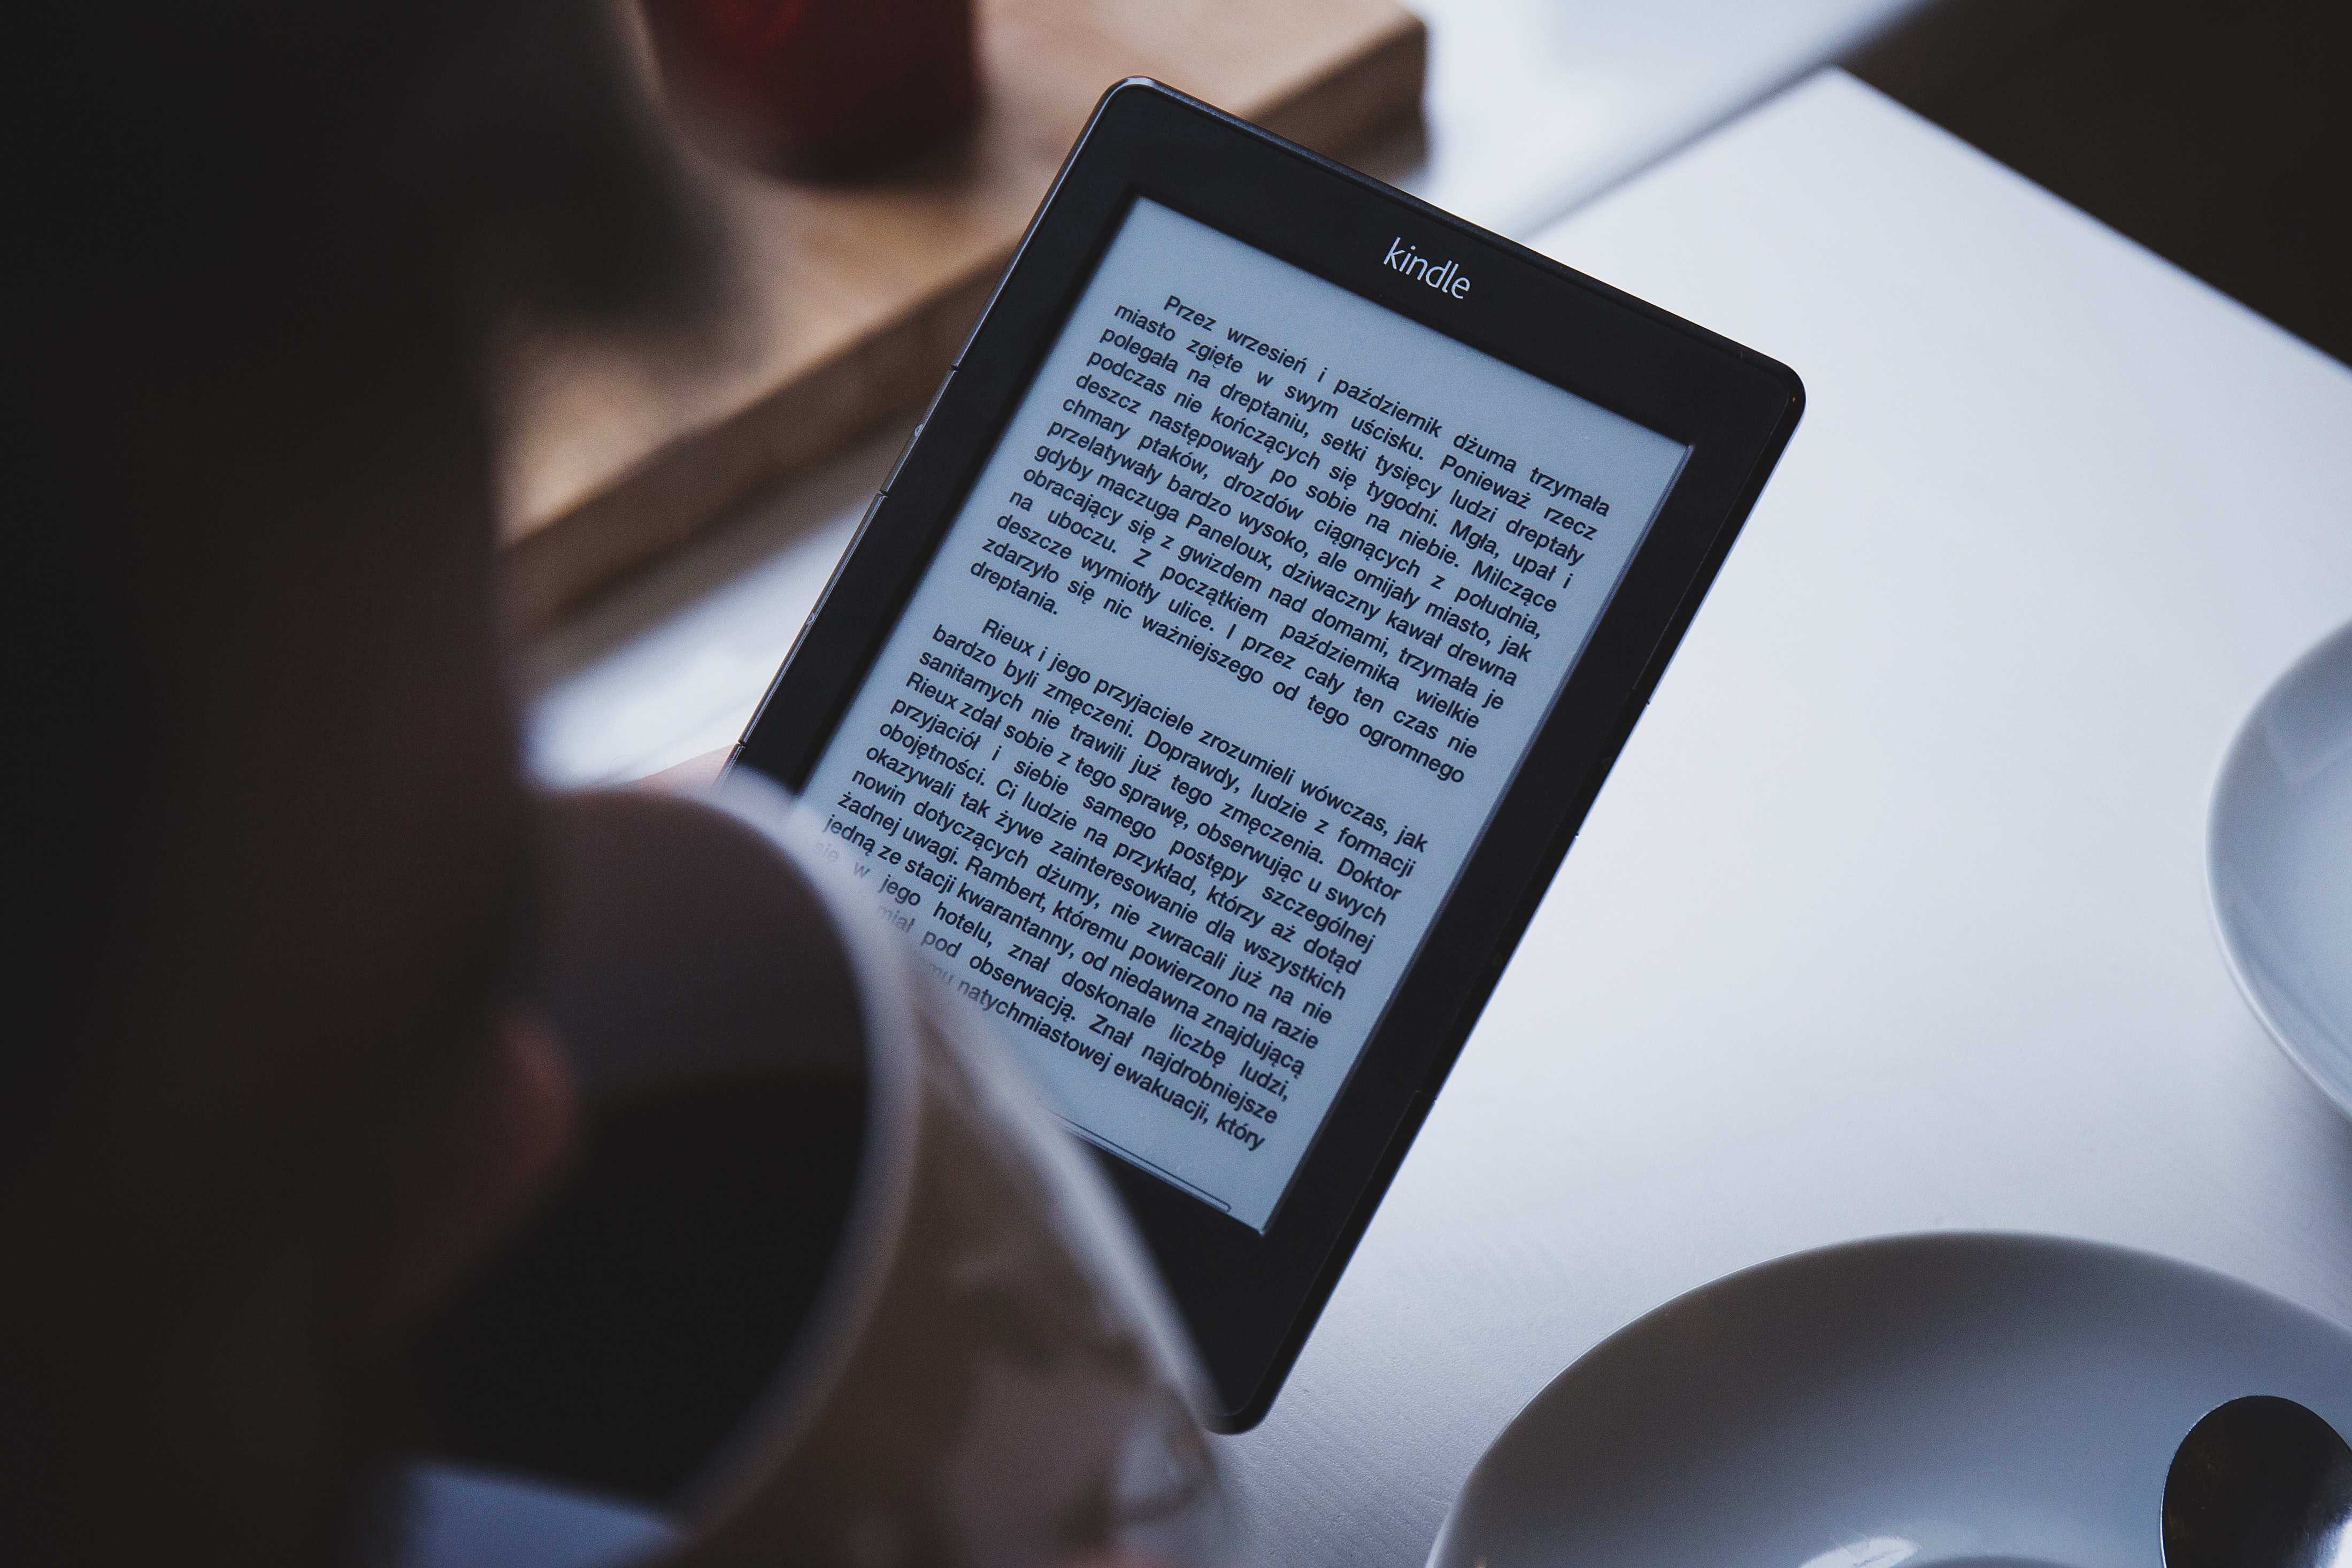 A person reading a book on a Kindle while drinking coffee